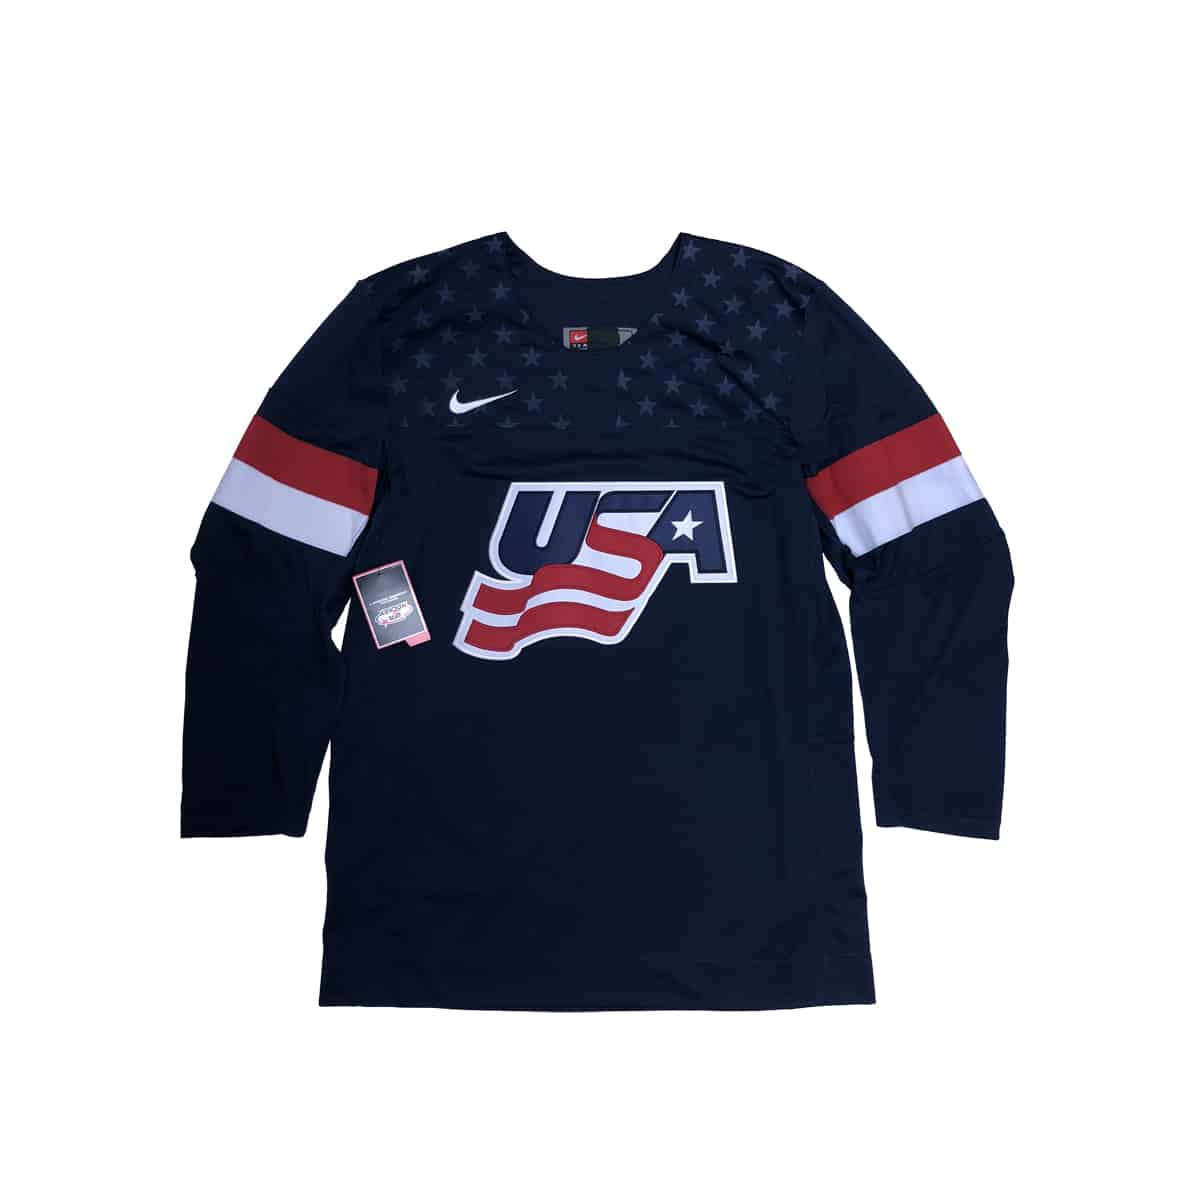 Authentic Nike USA Hockey Jersey